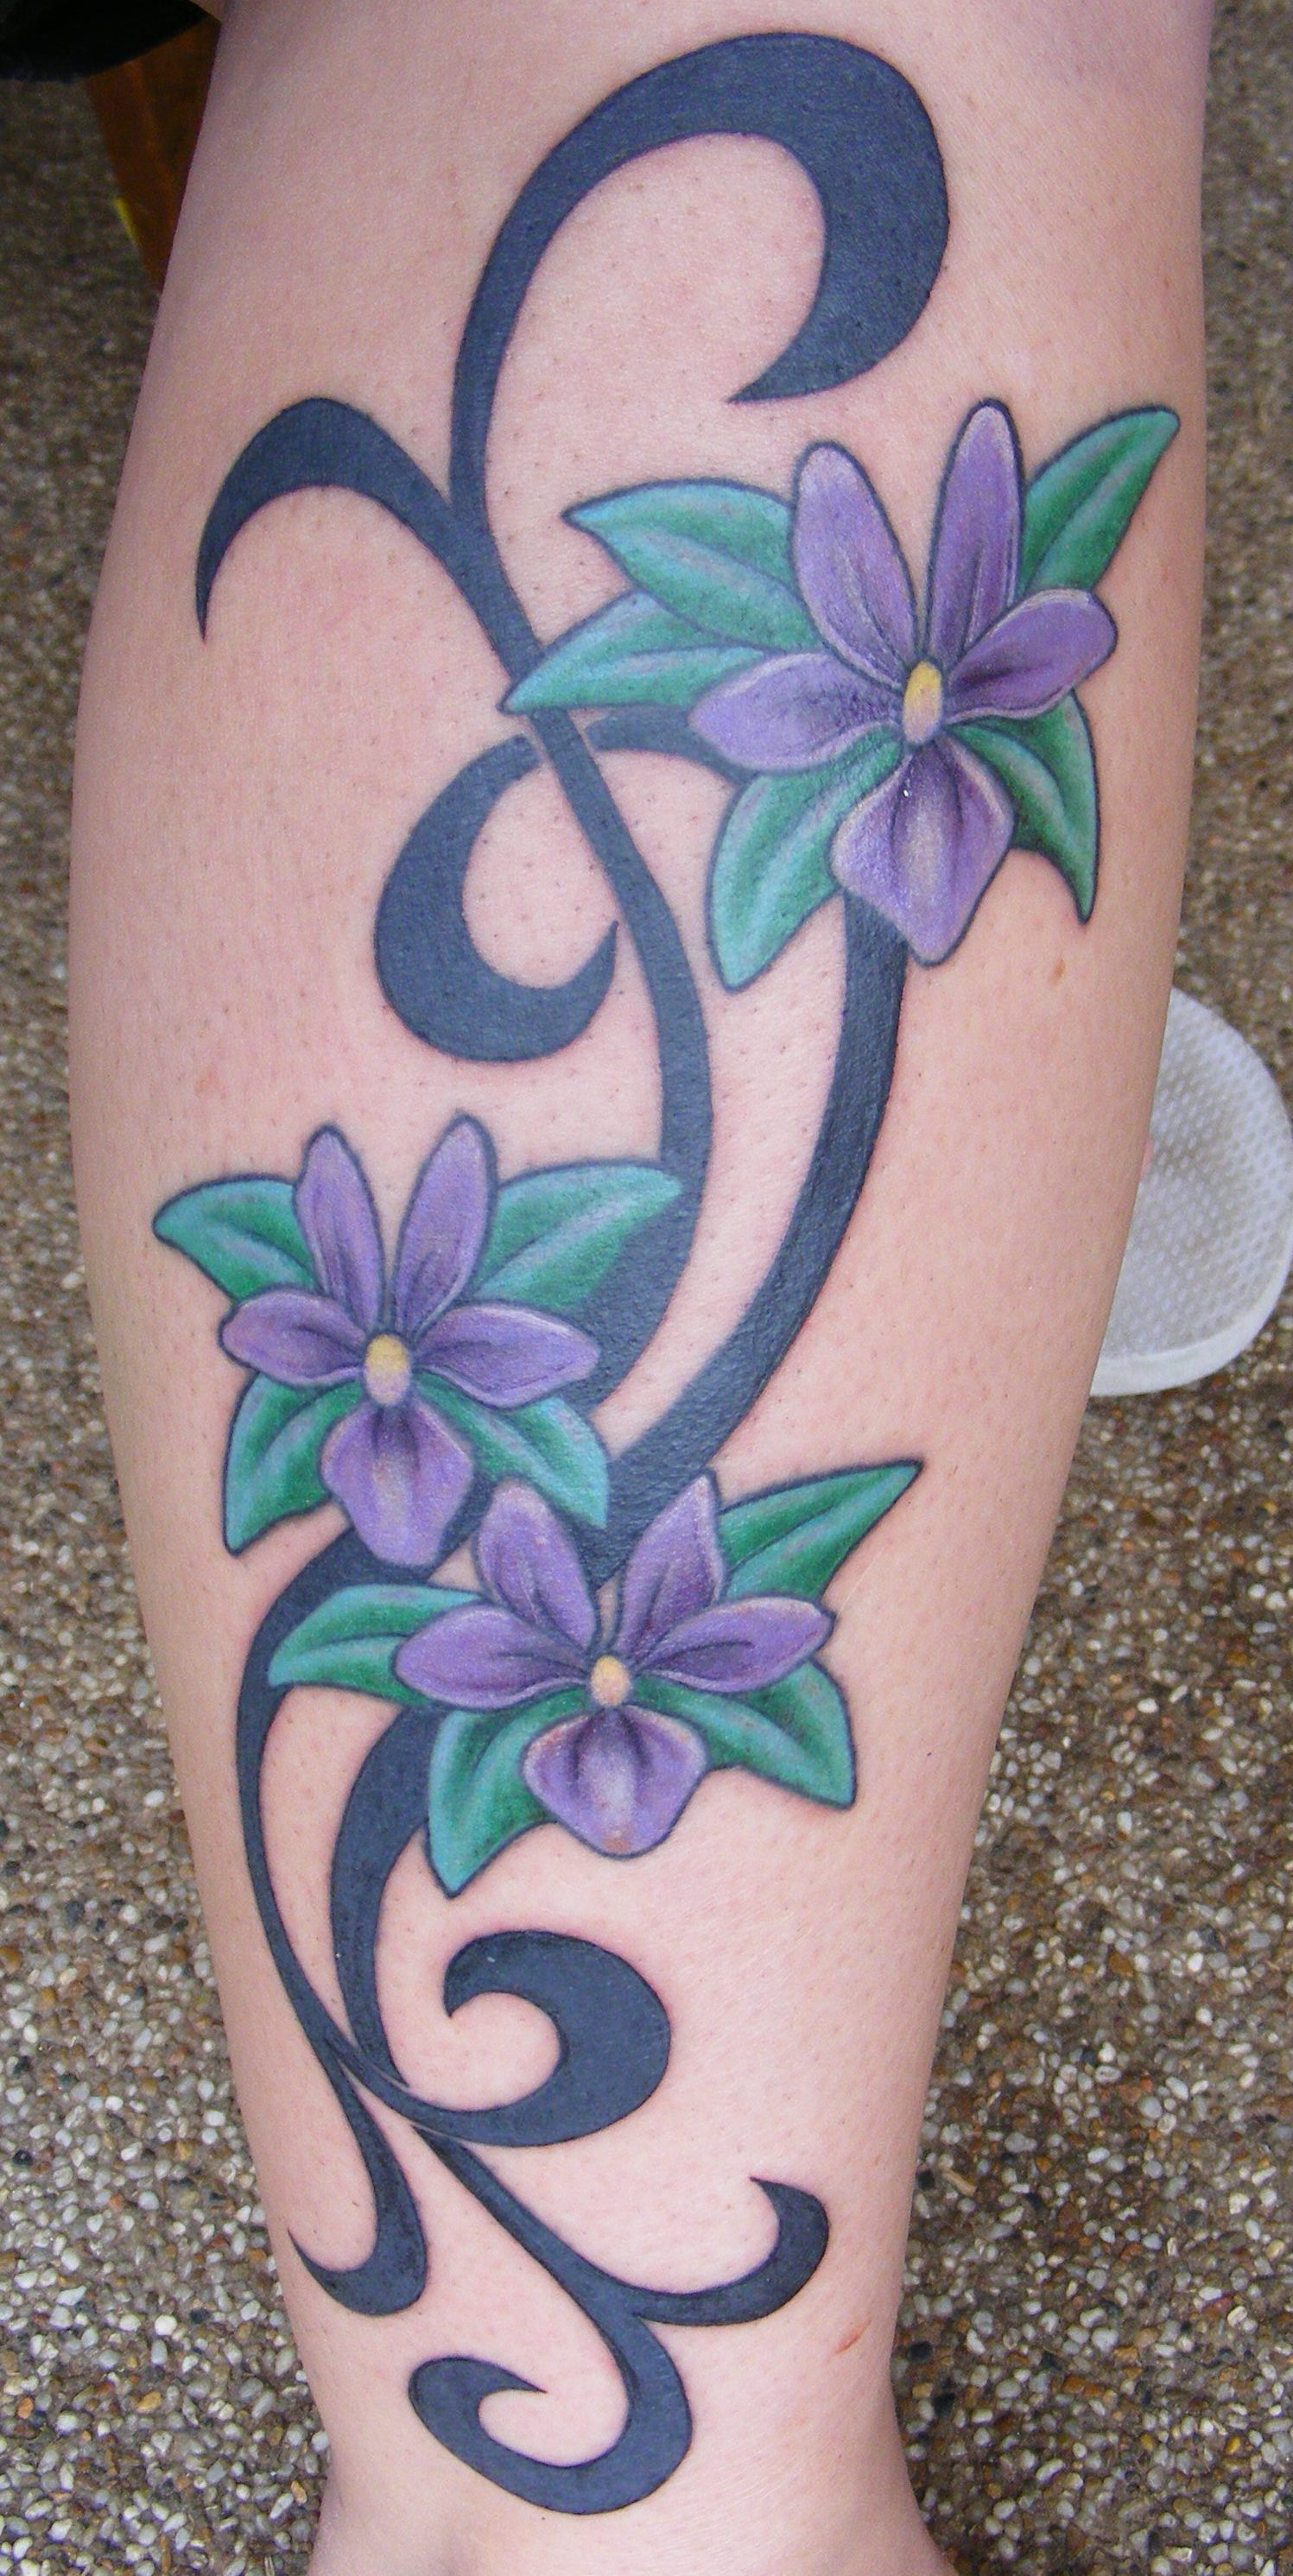 Flower Tattoos Designs Ideas And Meaning: Orchid Tattoos Designs, Ideas And Meaning